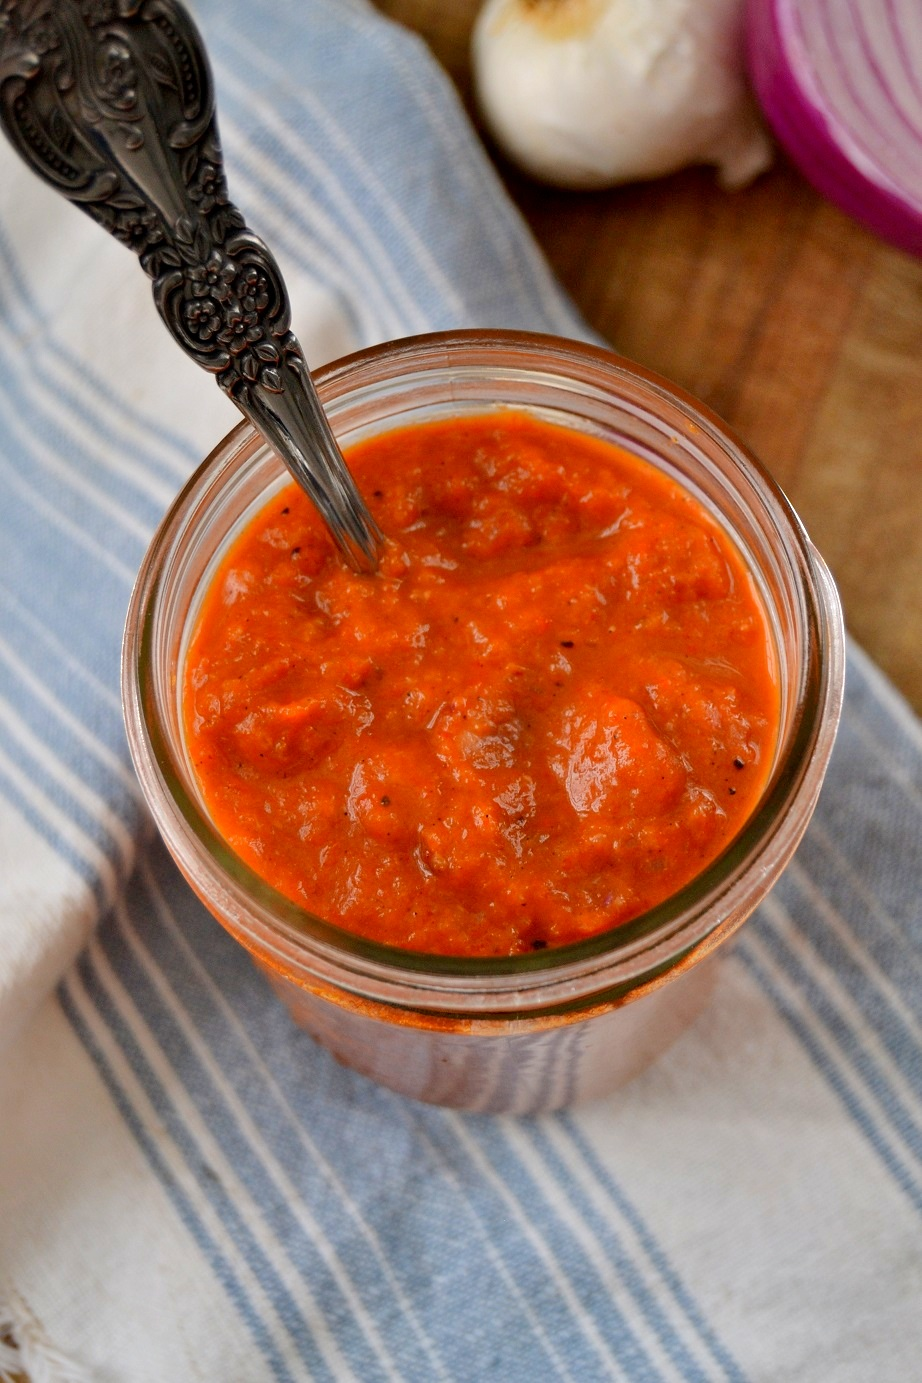 Fair Robin Revival - Roasted Red Pepper Chipotle Sauce